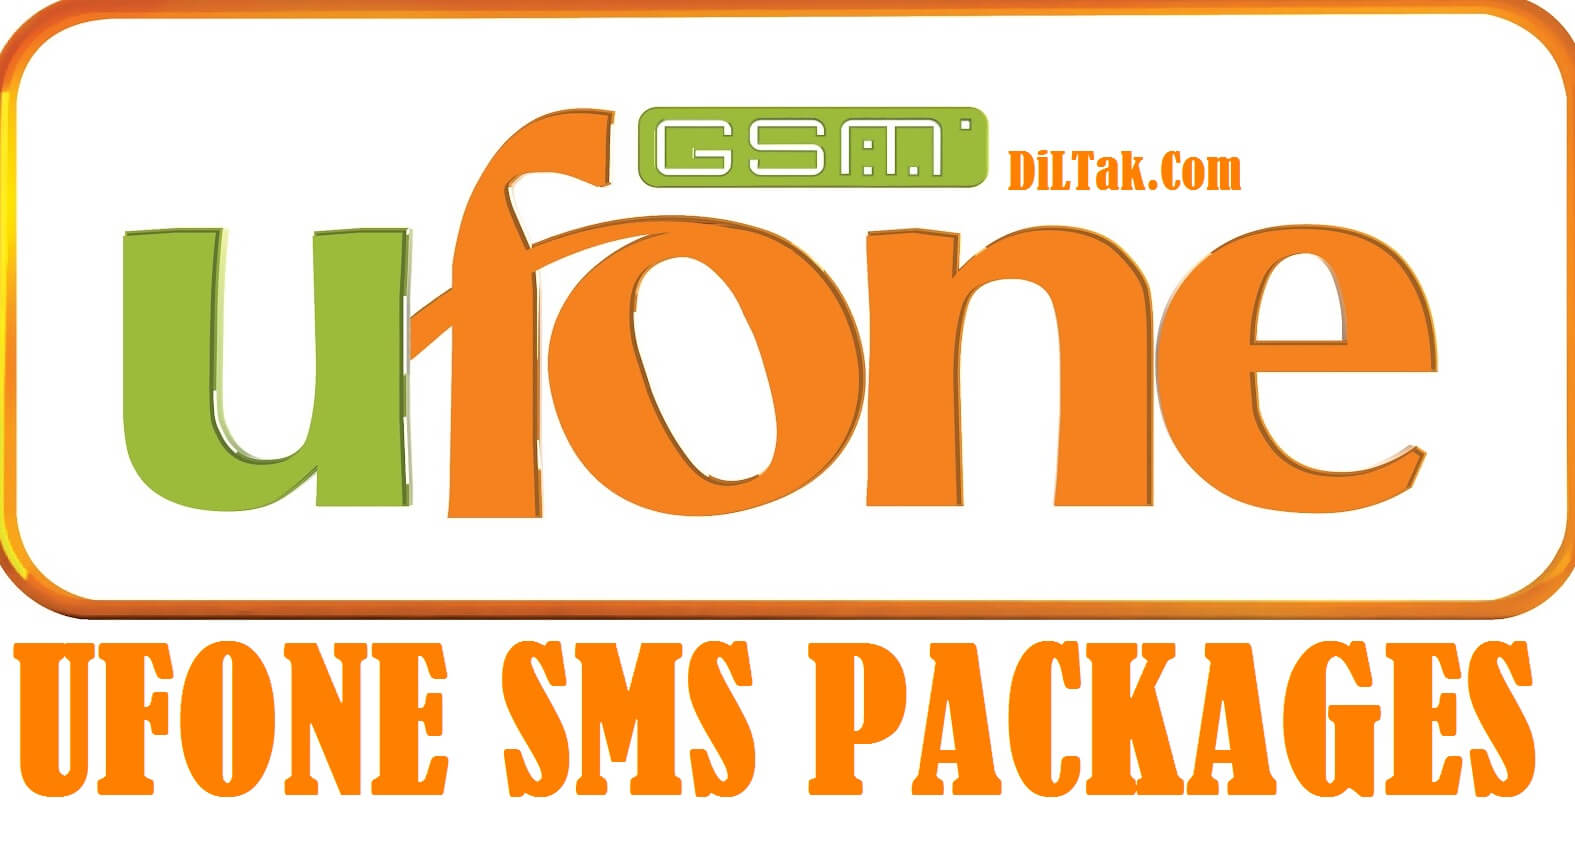 Ufone-SMS-Packages -daily-weekly-and-monthly